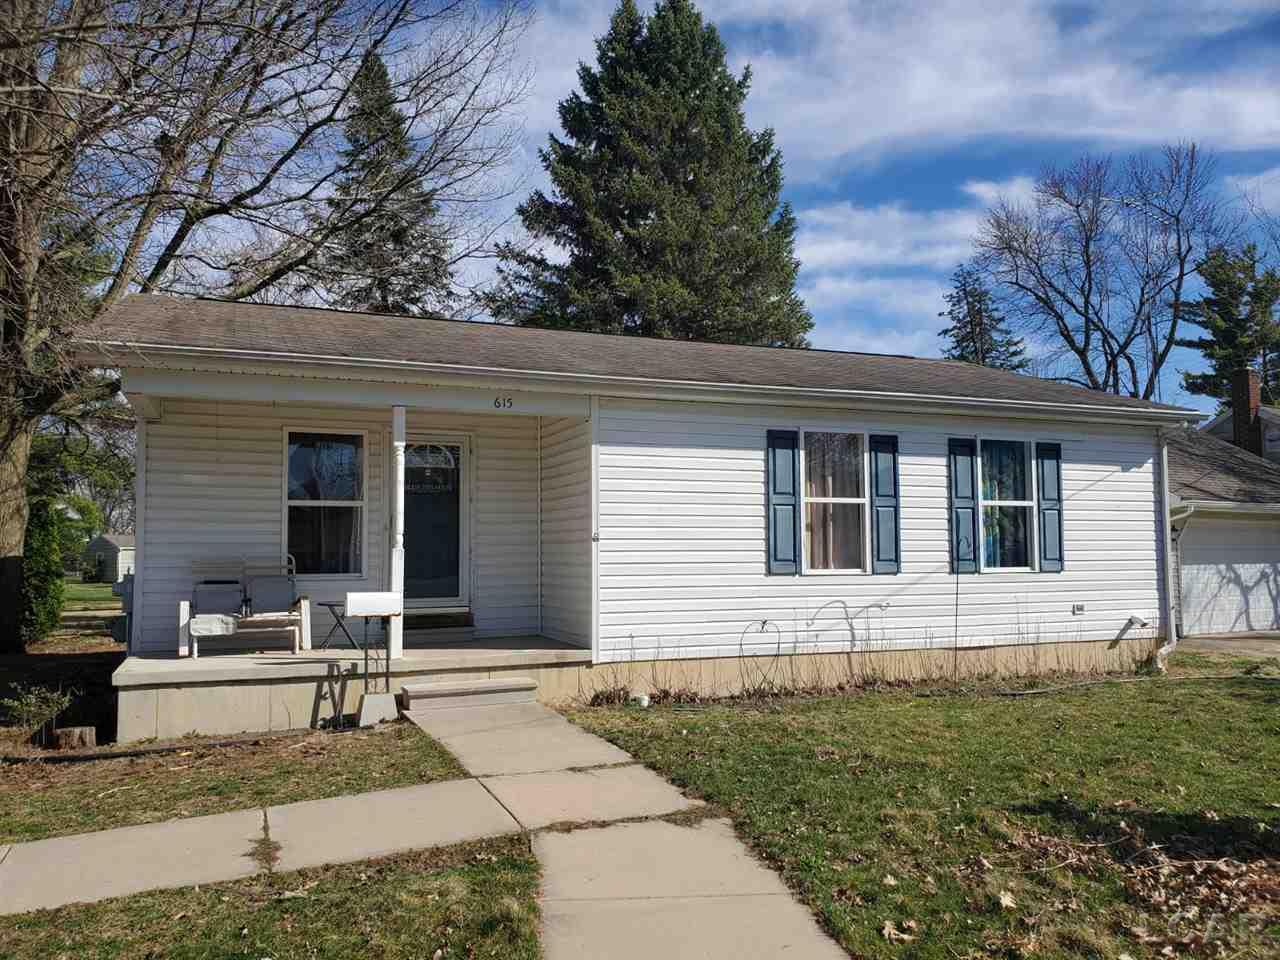 615 Giles Ave., Blissfield, Michigan 49228, 3 Bedrooms Bedrooms, ,1 BathroomBathrooms,Residential,For Sale,Giles Ave.,50032357